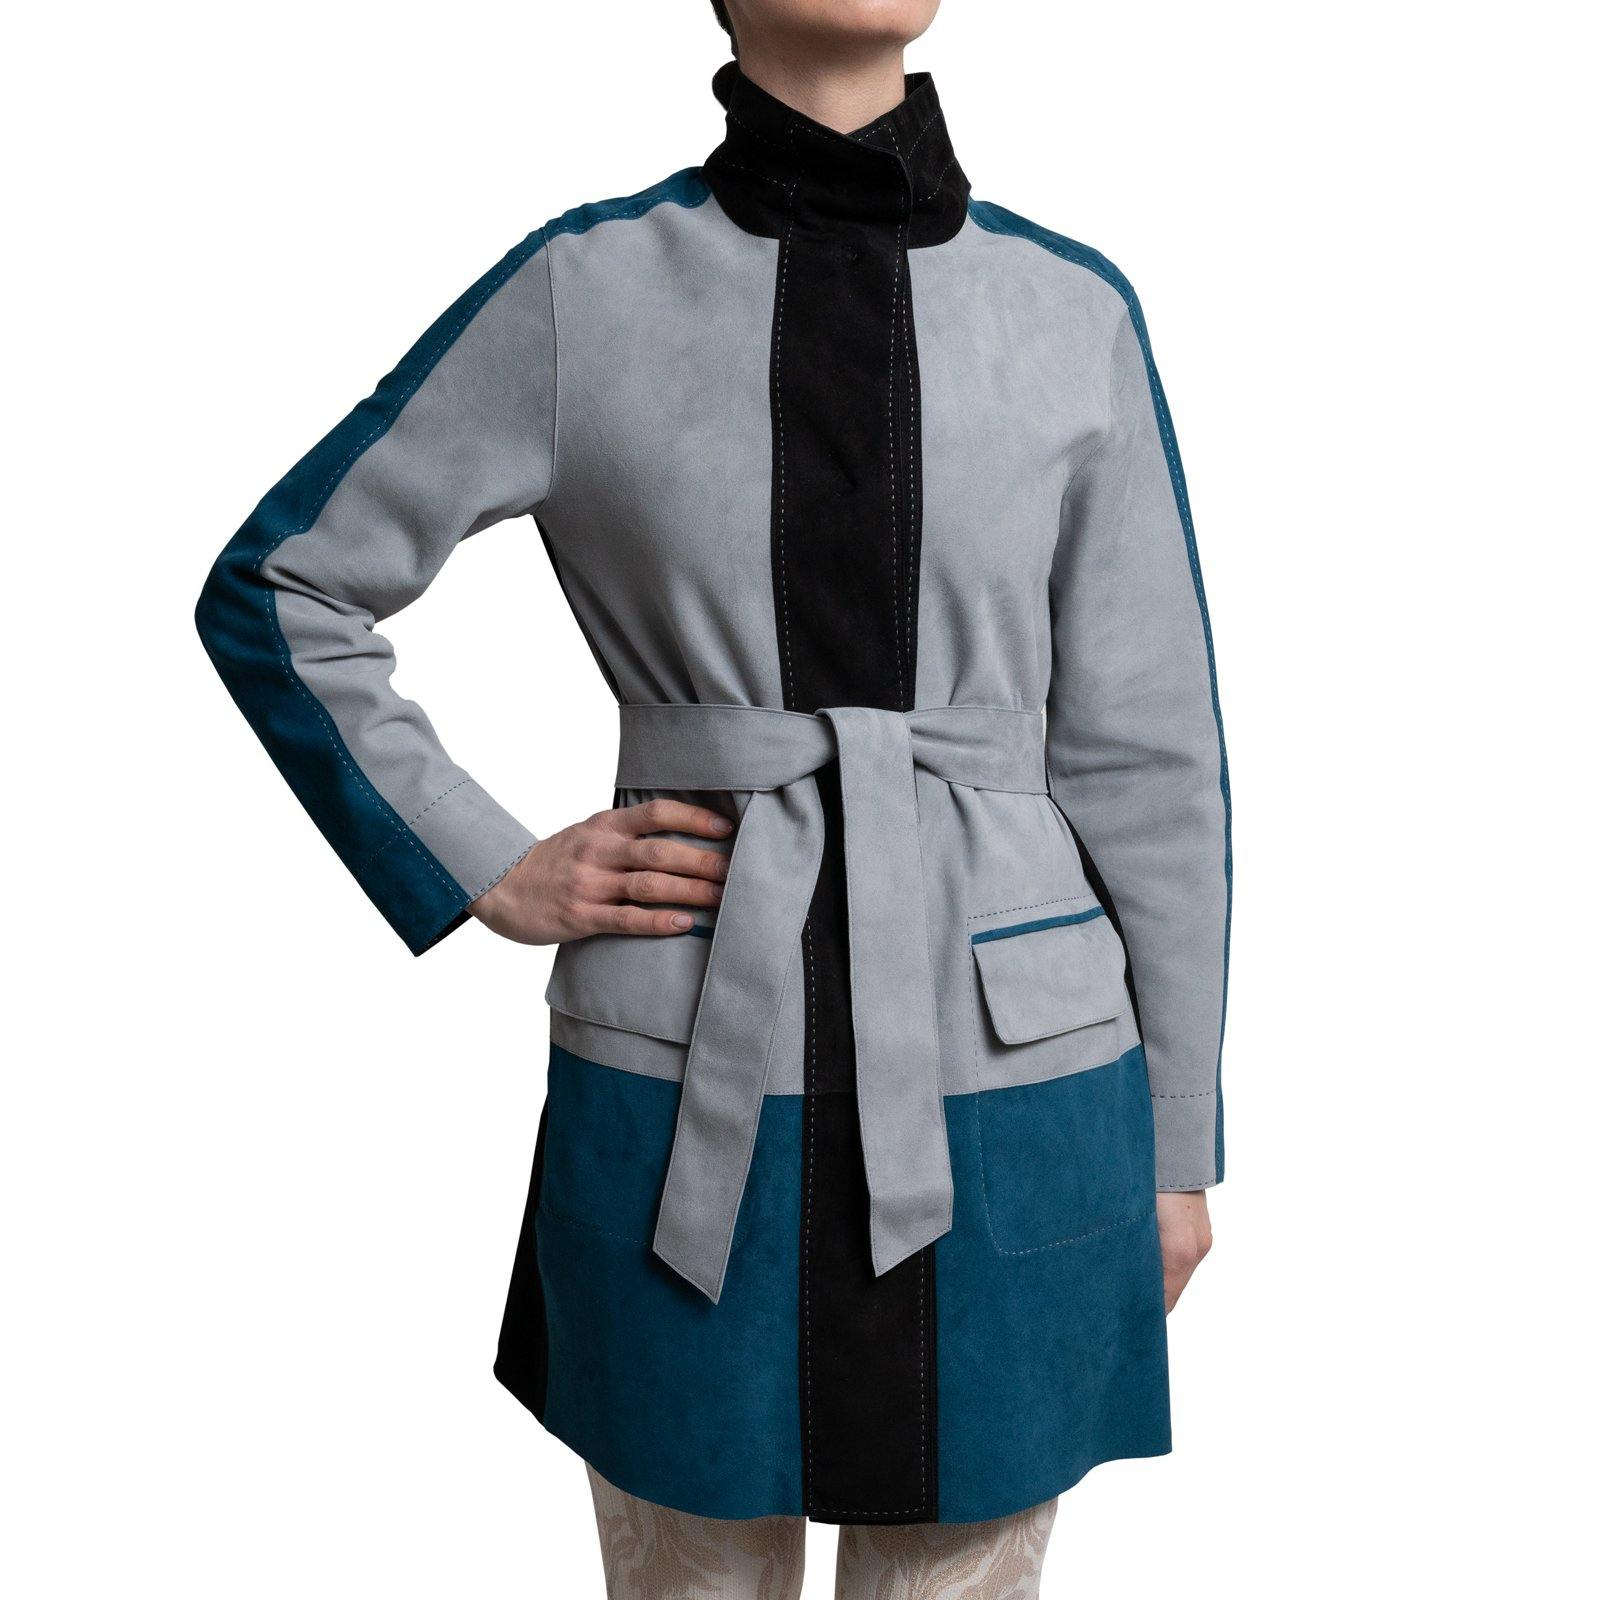 AURORA Reversible Leather Jacket in Black, Light Blue and Avio